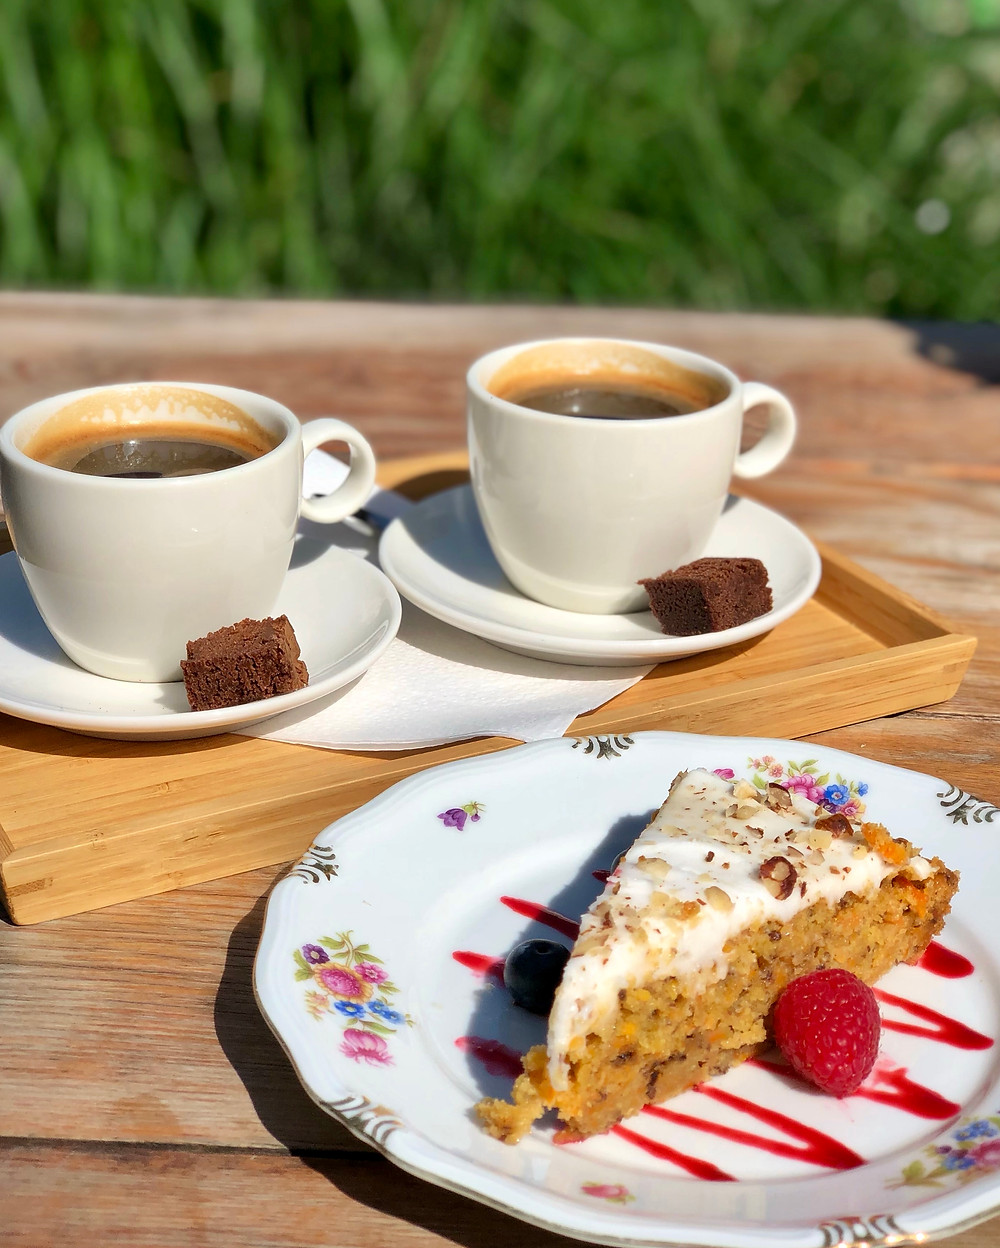 Coffee and carrot cake at Kato Gâteaux Mechelen